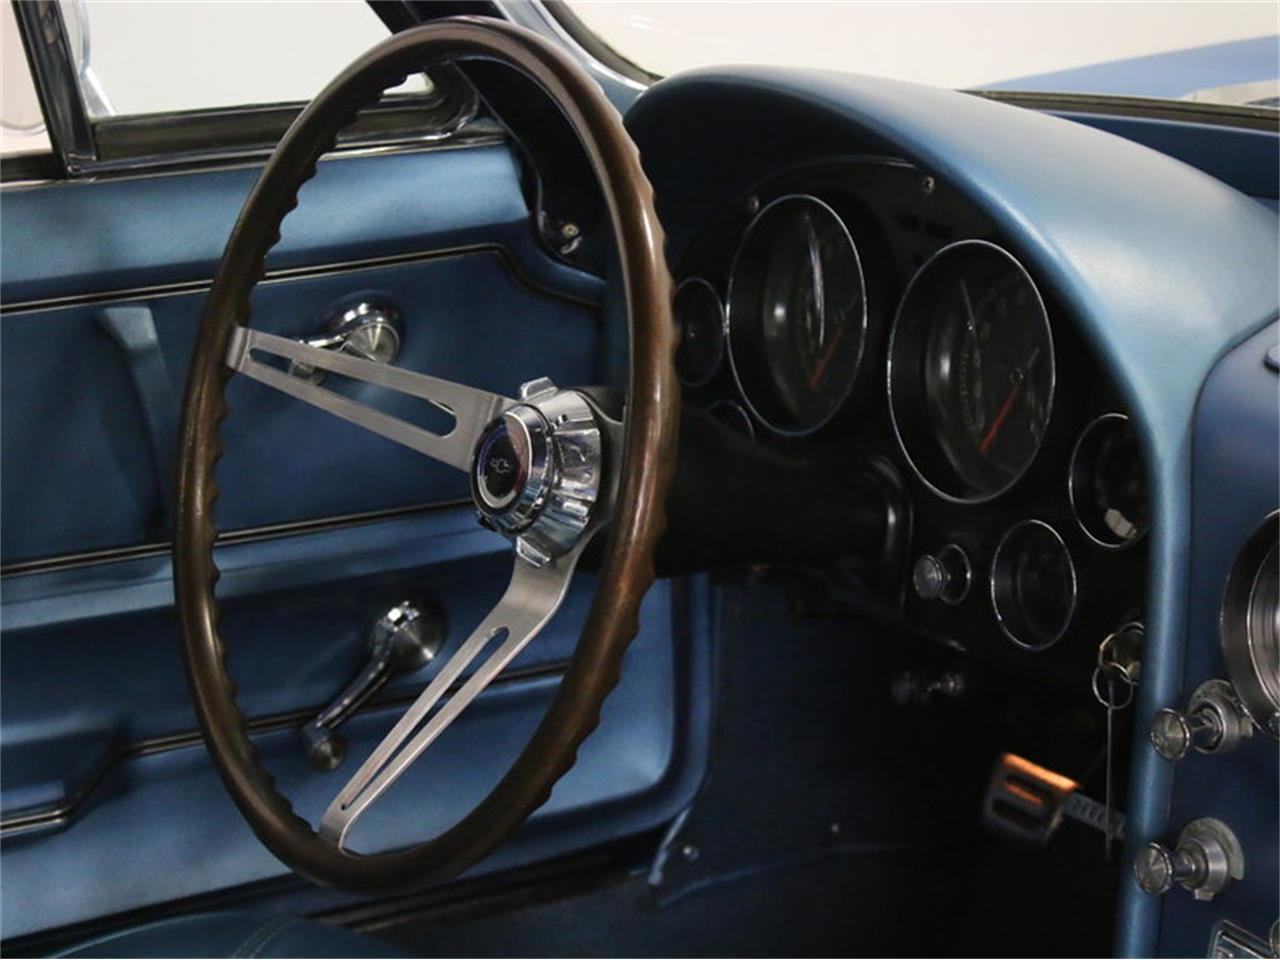 Large Picture of 1965 Corvette located in Ft Worth Texas - $47,995.00 Offered by Streetside Classics - Dallas / Fort Worth - JRNP